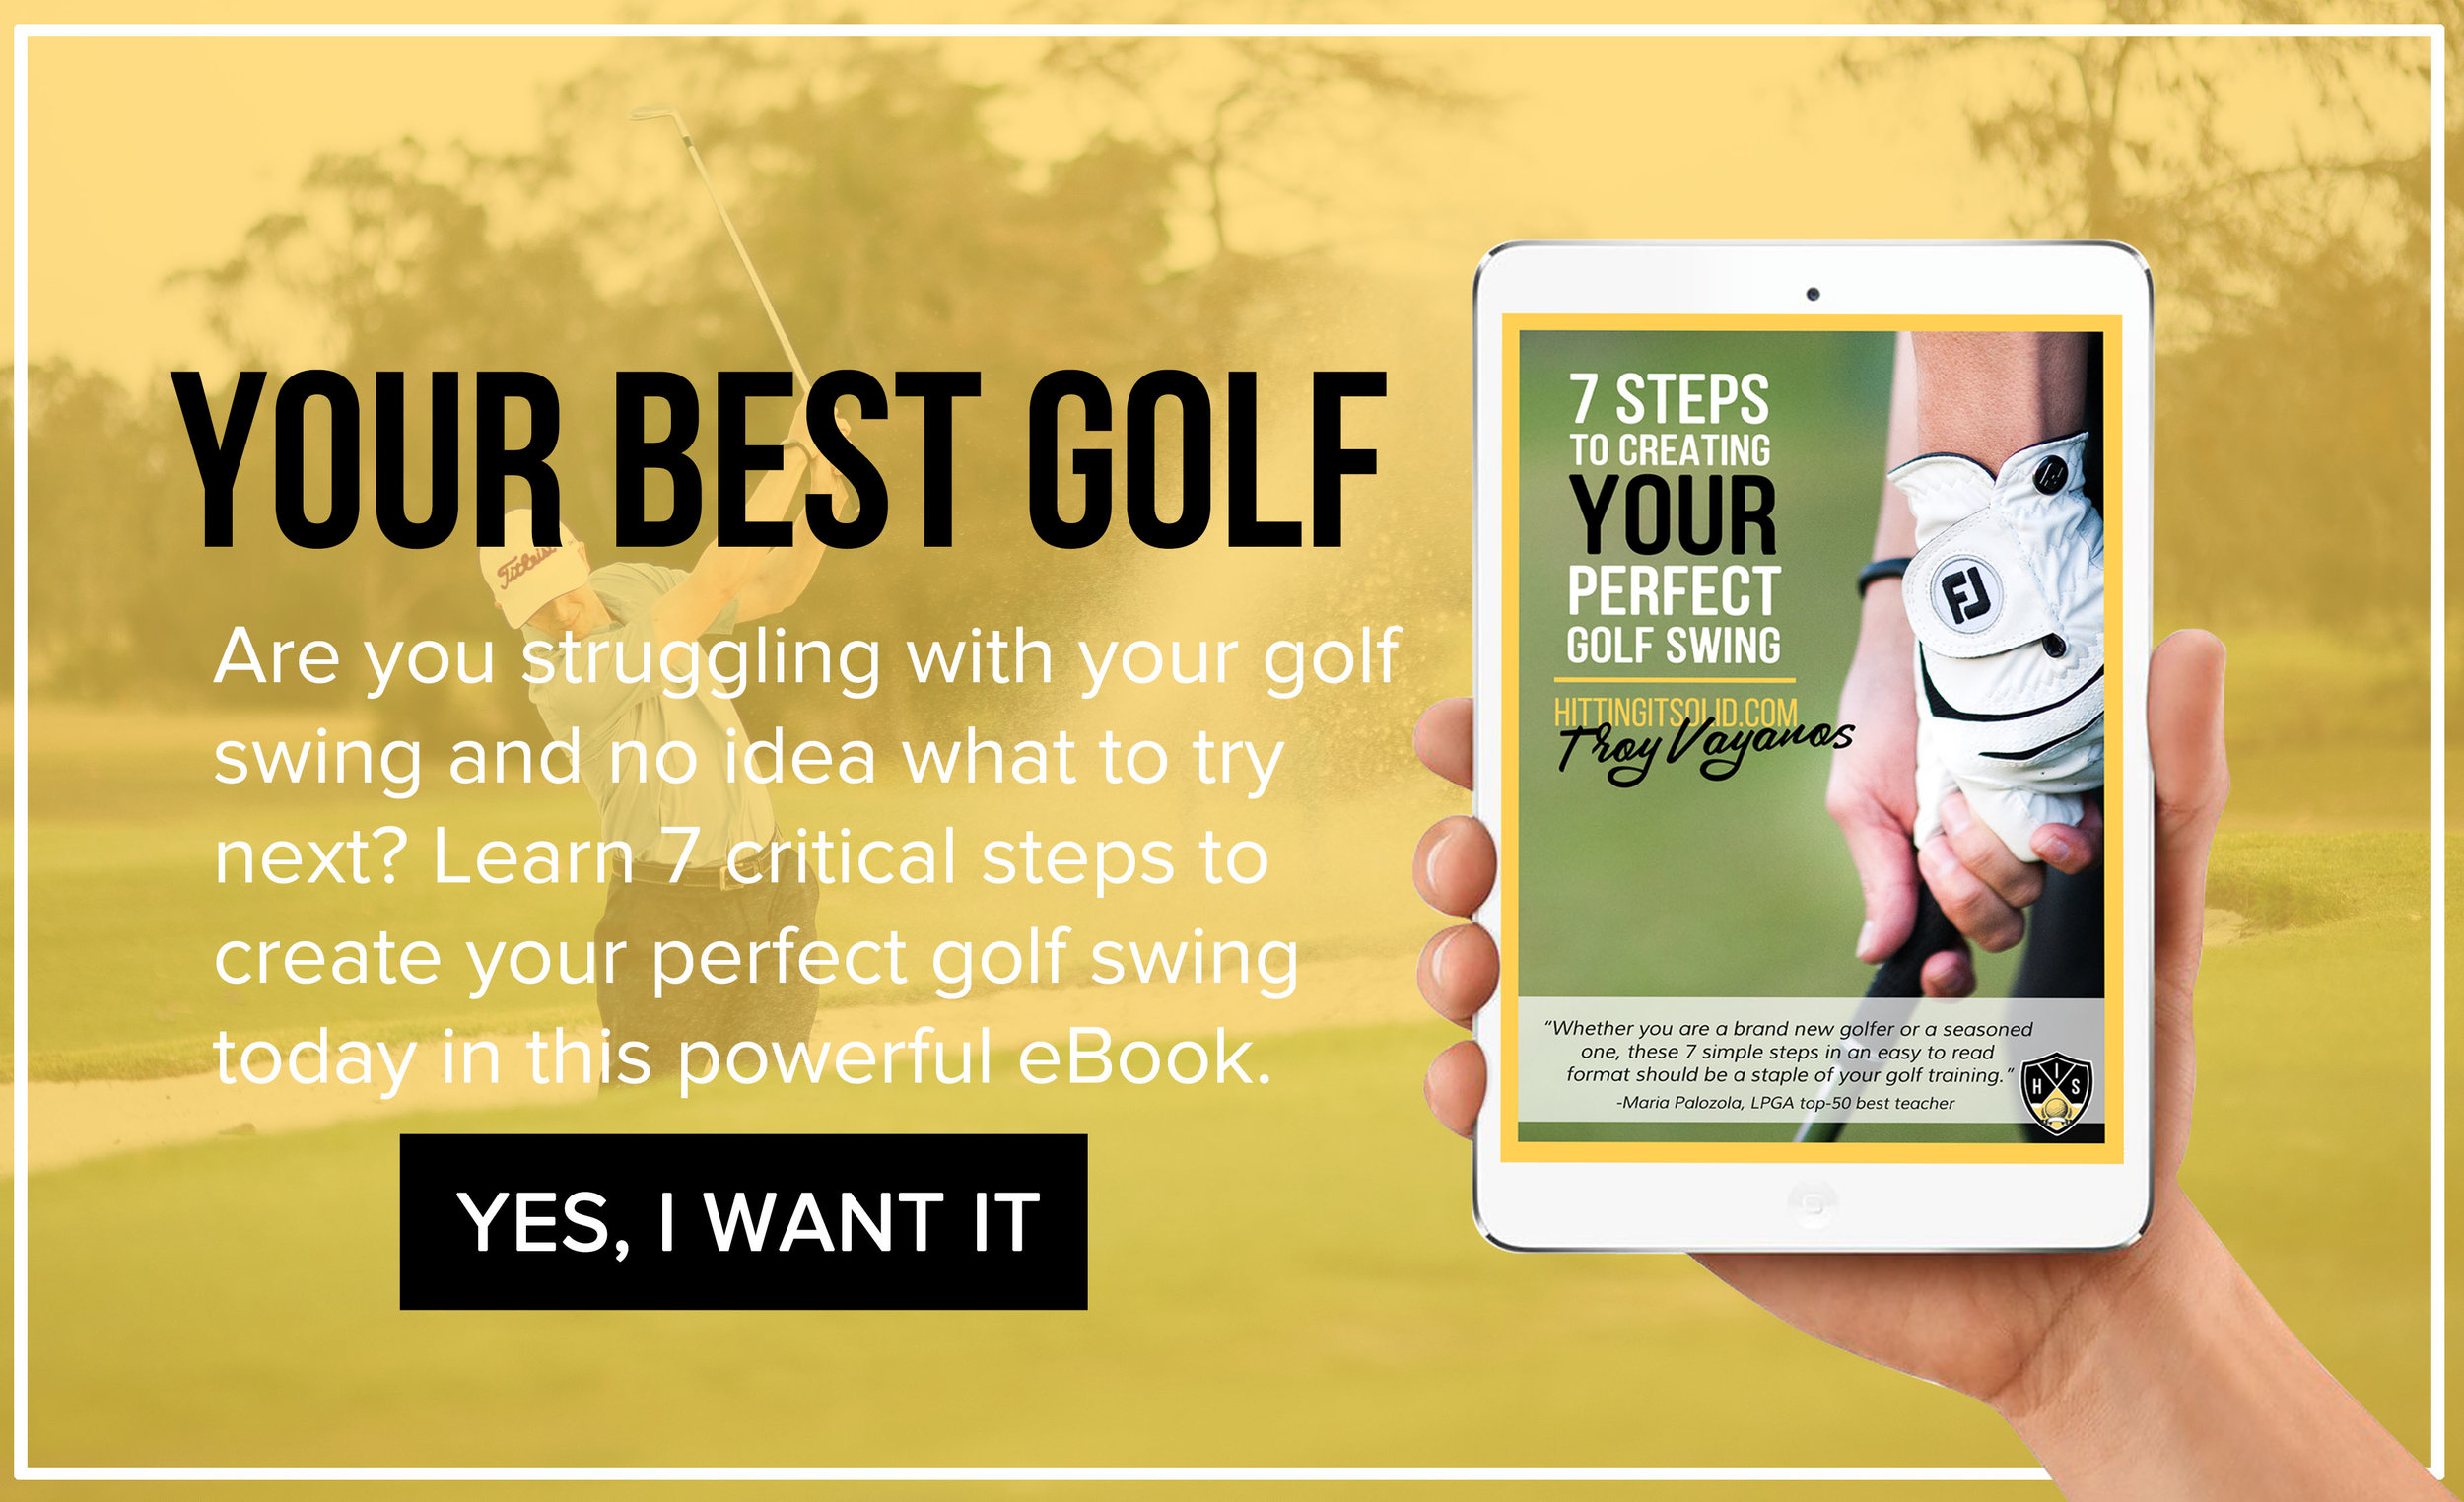 Play better golf today by learning the 7 steps to creating your perfect golf swing